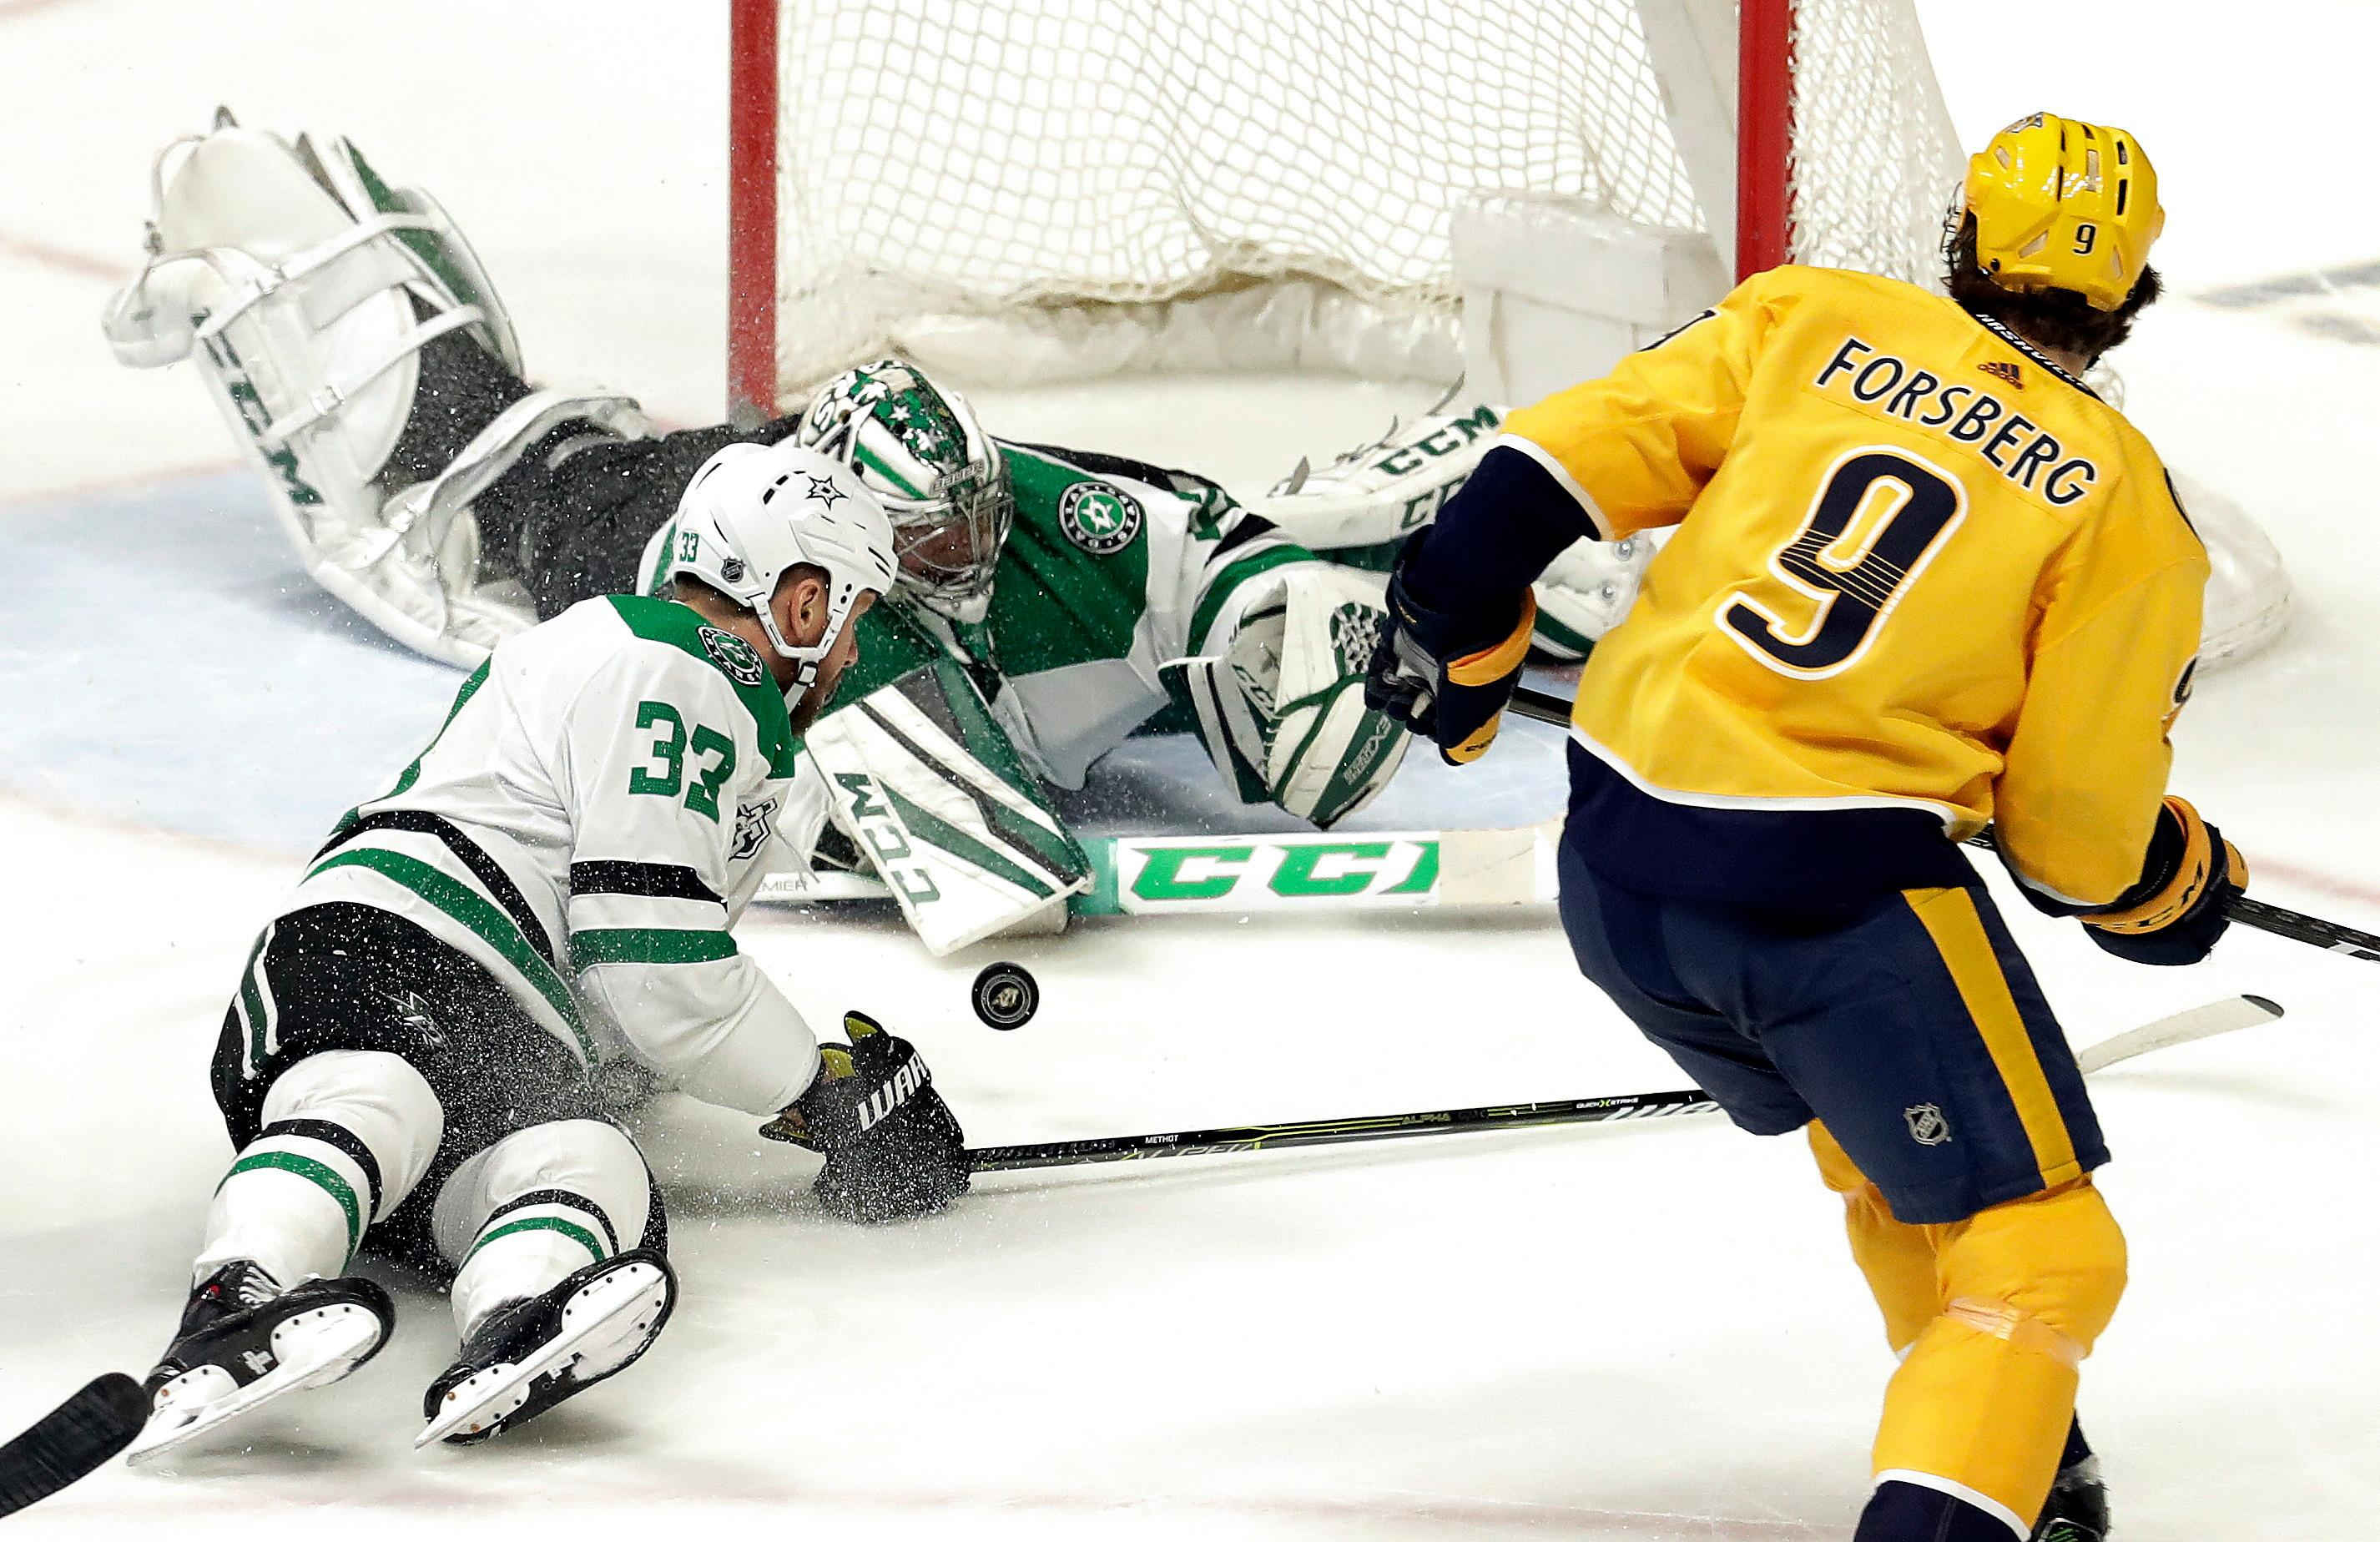 Dallas Stars goalie Kari Lehtonen, of Finland, and defenseman Marc Methot (33) surround the puck as Nashville Predators left wing Filip Forsberg (9), of Sweden, closes in during the third period of an NHL hockey game Tuesday, March 6, 2018, in Nashville, Tenn. The Predators won 2-0. (AP Photo/Mark Humphrey)